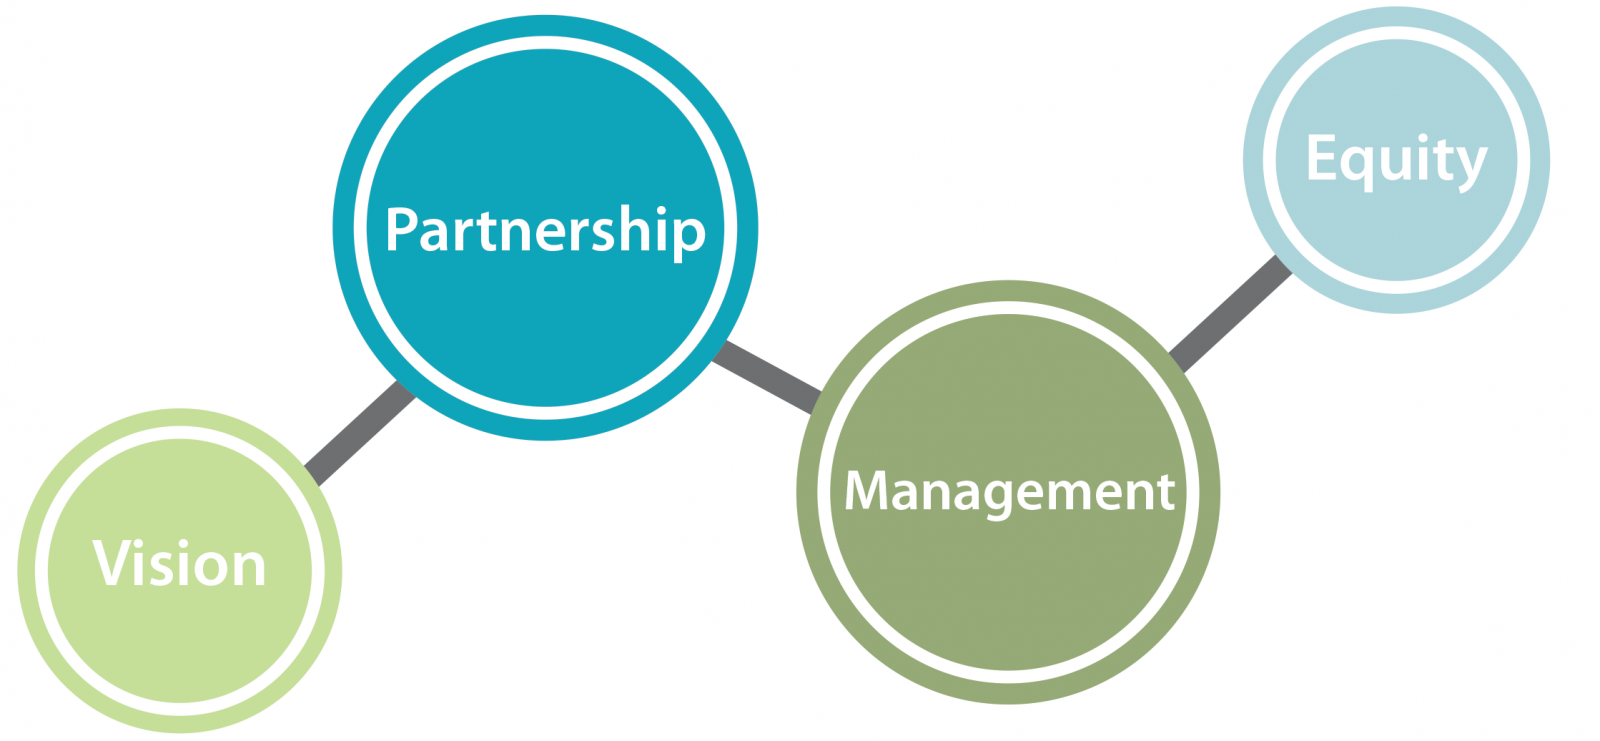 Vision partnership management equity infographic